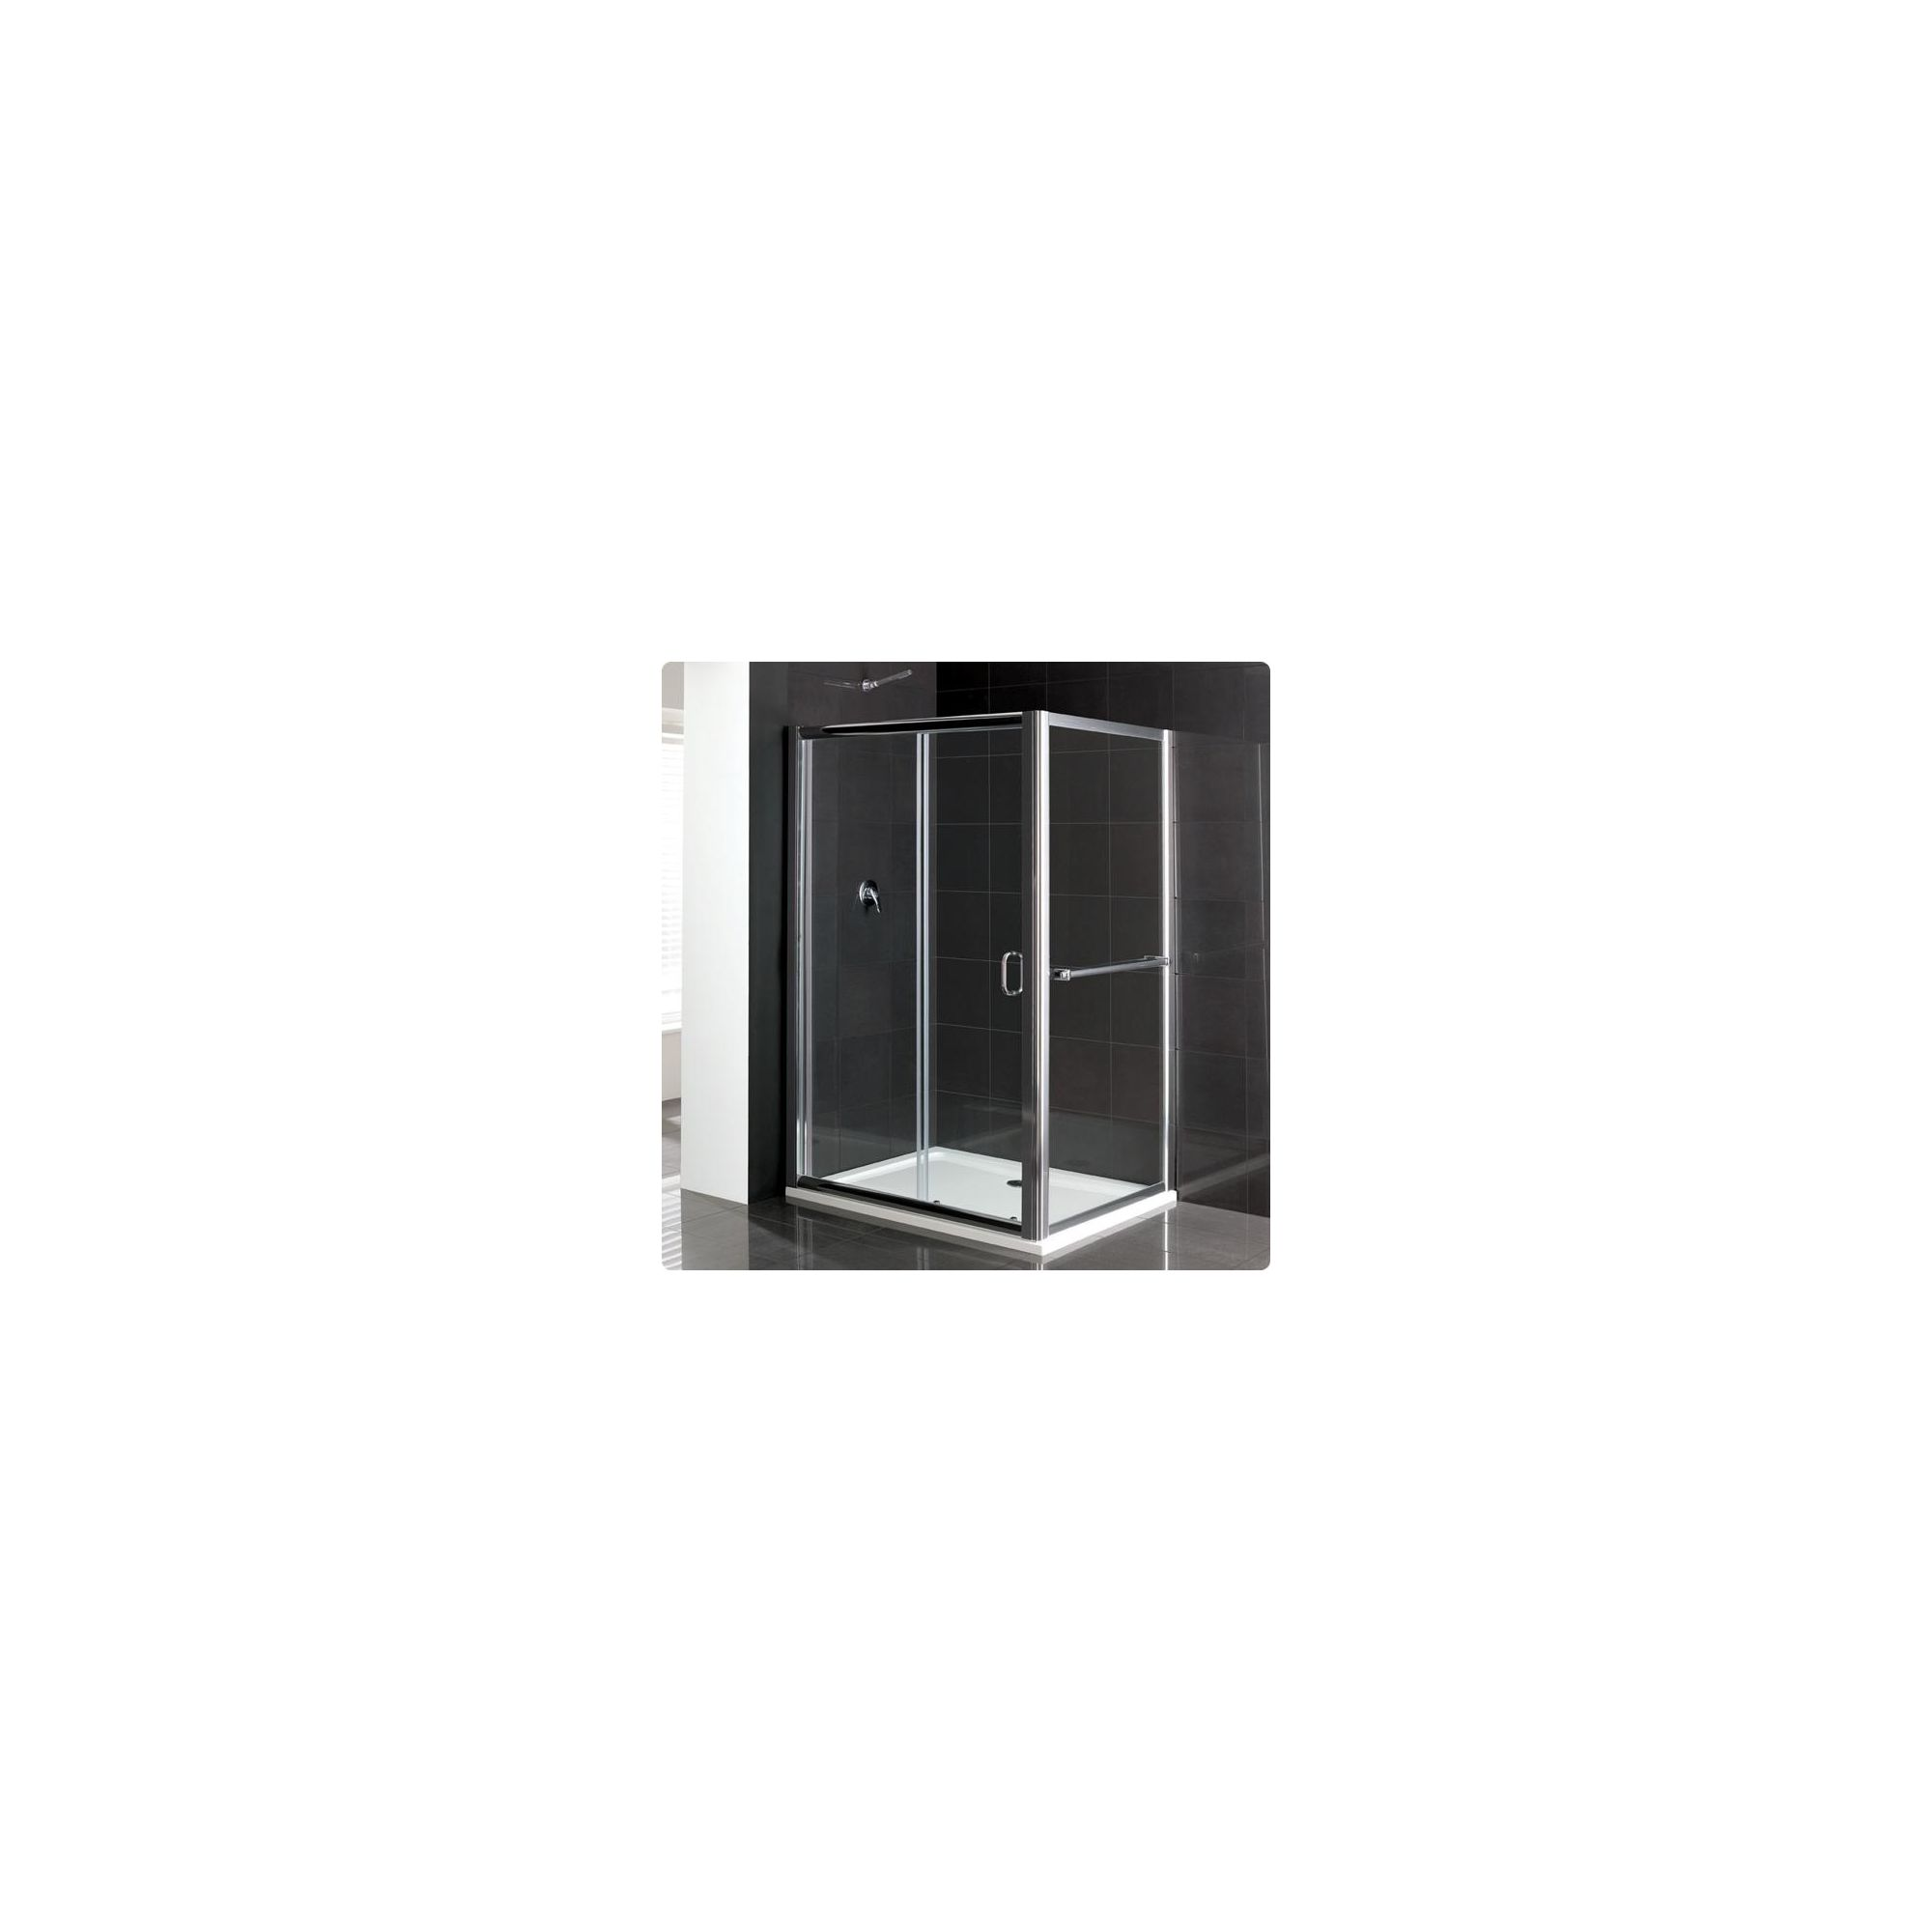 Duchy Elite Silver Sliding Door Shower Enclosure, 1600mm x 800mm, Standard Tray, 6mm Glass at Tesco Direct